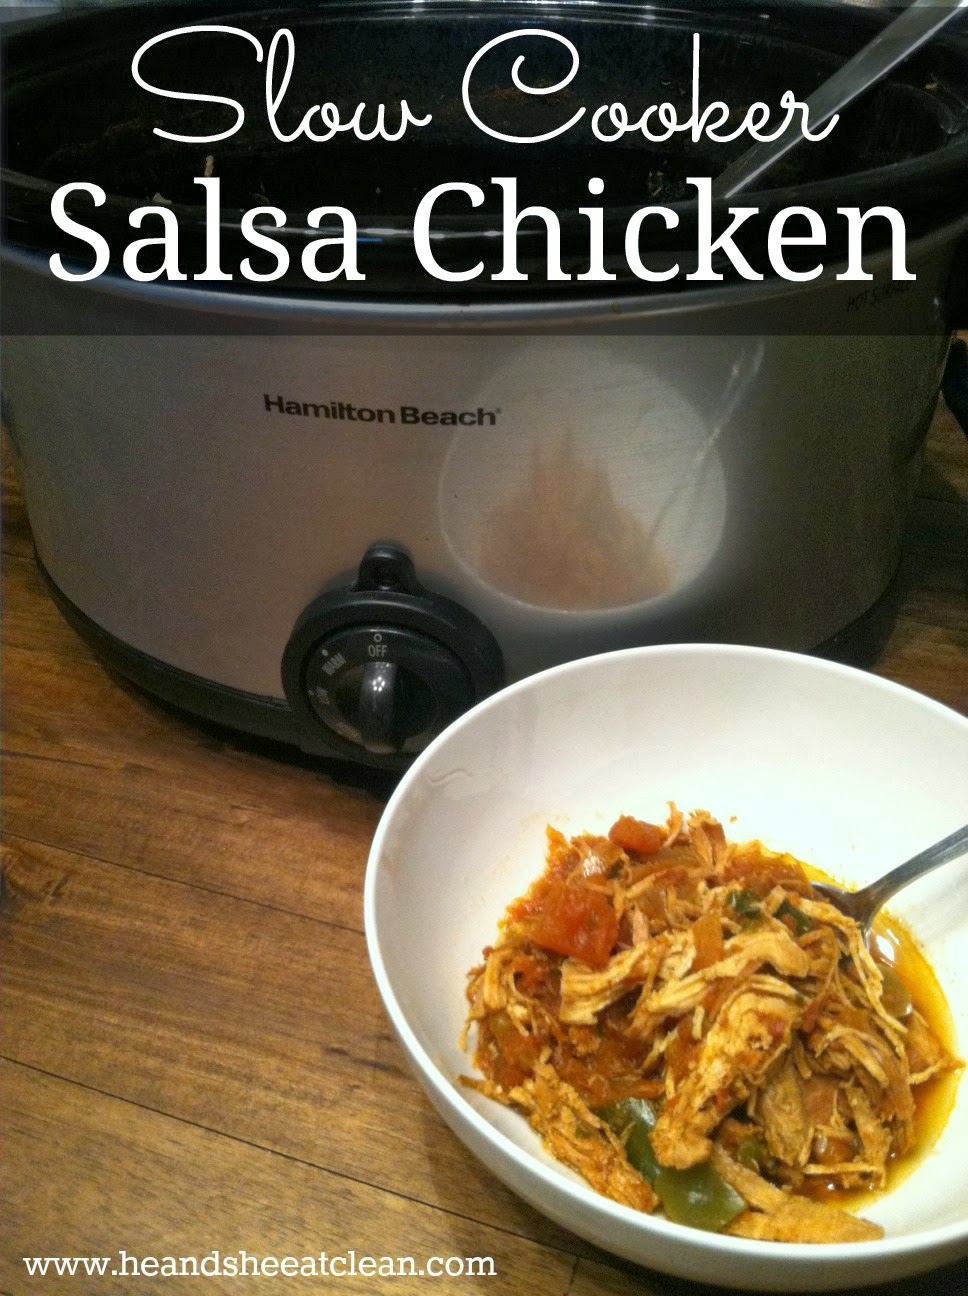 Slow-cooker-crock-pot-pulled-chicken-breast-easy-to-make-eat-clean-paleo-gluten-free-he-she-recipe-dinner-week-night-meal-weekly-food-prep-salsa-chicken.jpg